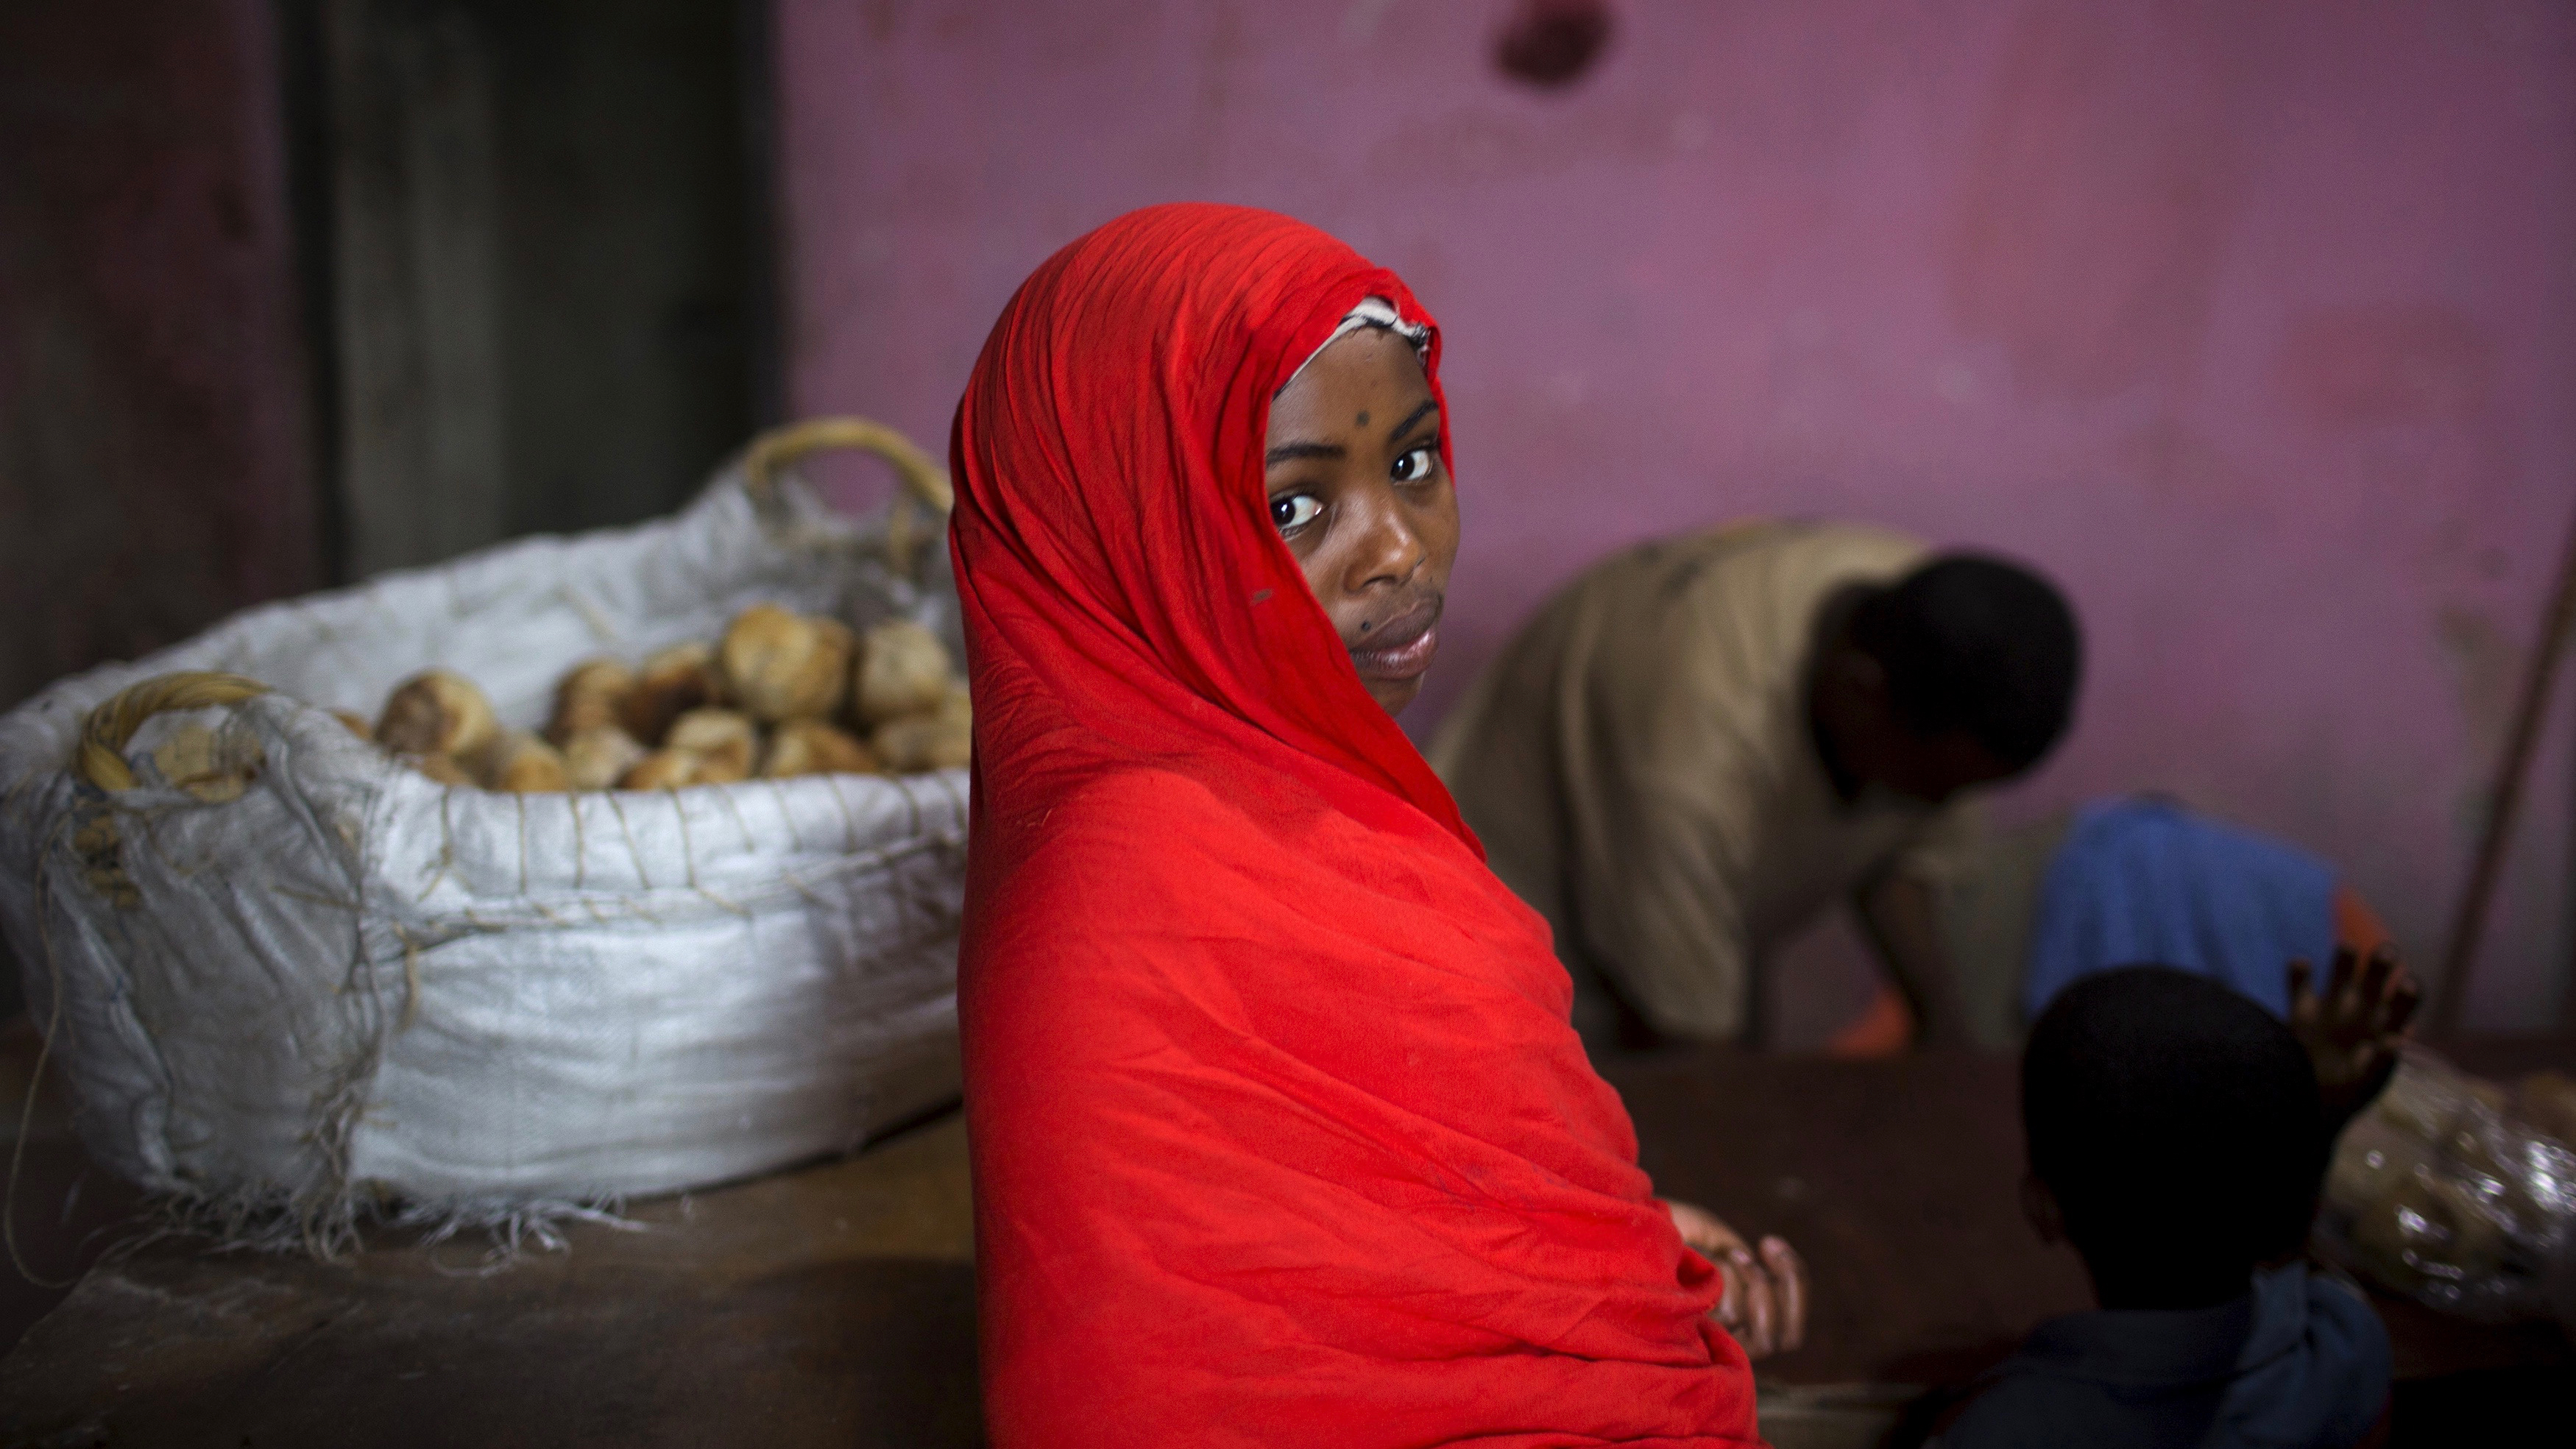 "A girl is seen in a bakery in the old walled town of Harar in eastern Ethiopia, May 19, 2015. Daily life of people in Ethiopia, where elections are held this weekend, is portrayed in the east African nation's churches and mosques, coffee shops and markets, both in the capital Addis Ababa and the walled town of Harar in the east. Ethiopia, home to nearly 100 million people, holds the first poll on Sunday since long-serving leader Meles Zenawi died in 2012. REUTERS/Siegfried Modola  PICTURE 26 OF 32 FOR WIDER IMAGE STORY ""SOCIETY AND FAITH IN ETHIOPIA"" SEARCH ""MODOLA FAITH"" FOR ALL IMAGES - RTX1E4LP"